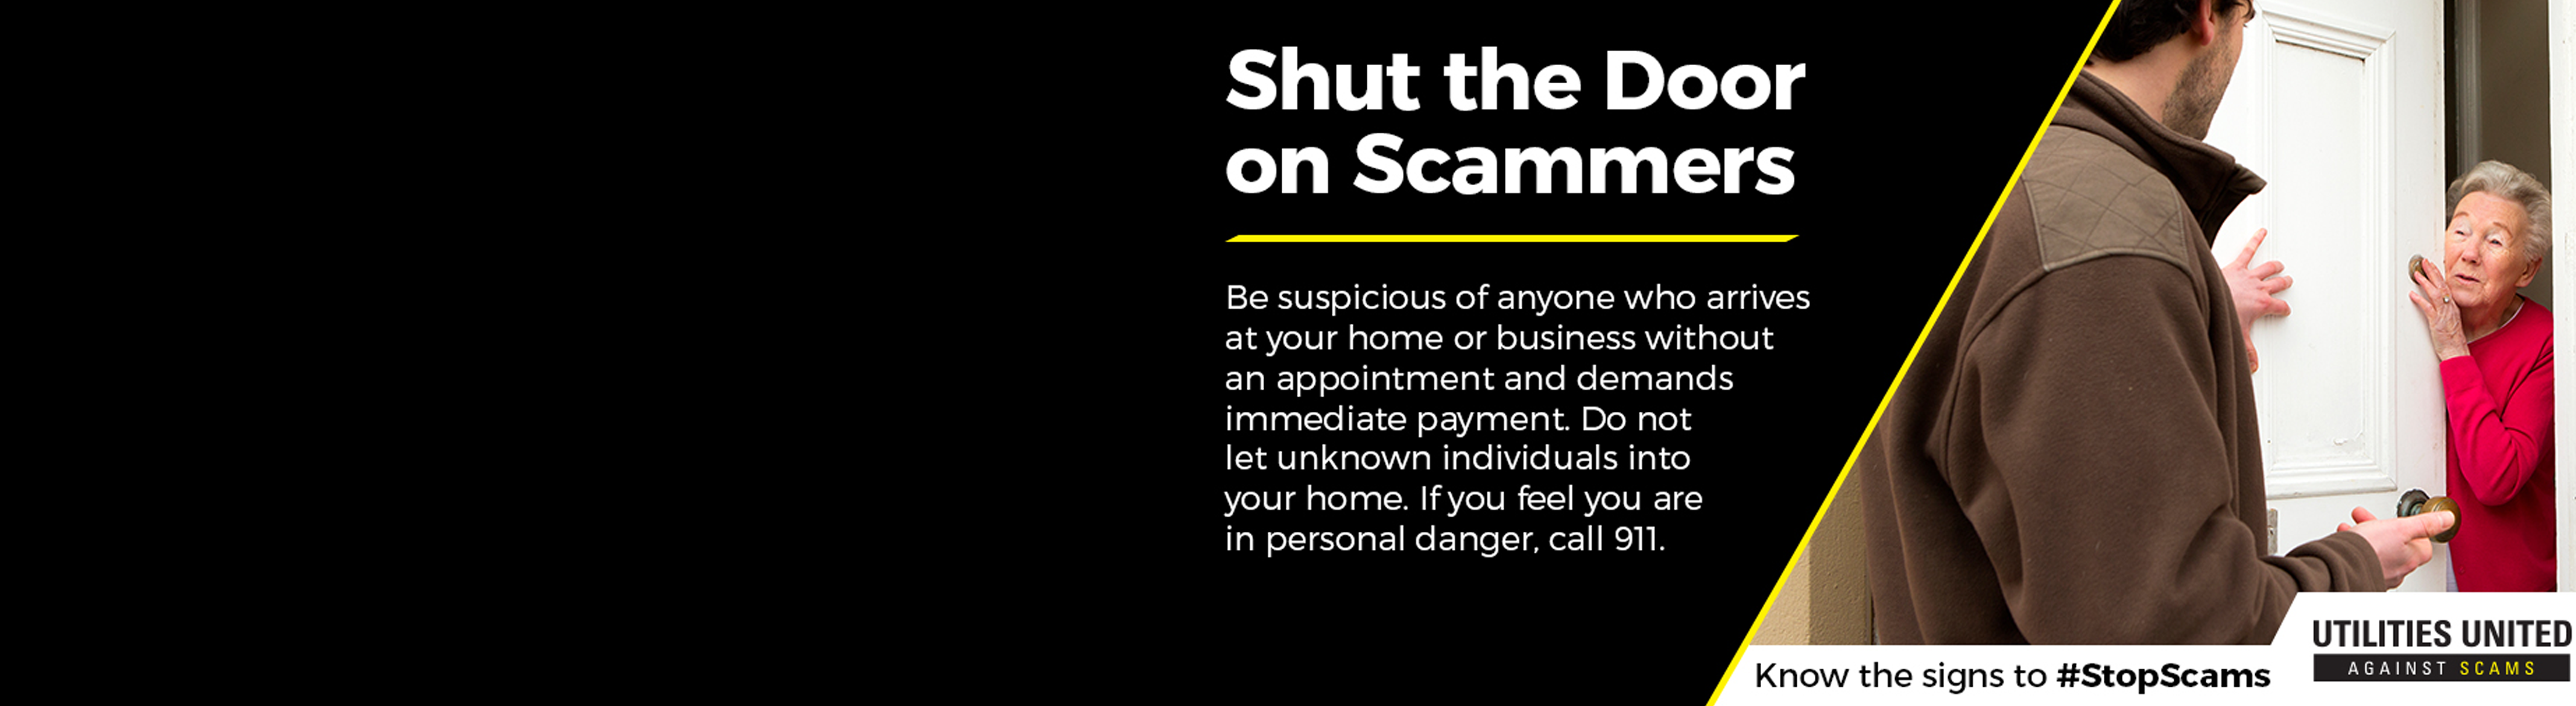 Shut the door on scammers. Be suspicious of anyone who arrives at your home or business without an appointment and demands immediate payment.